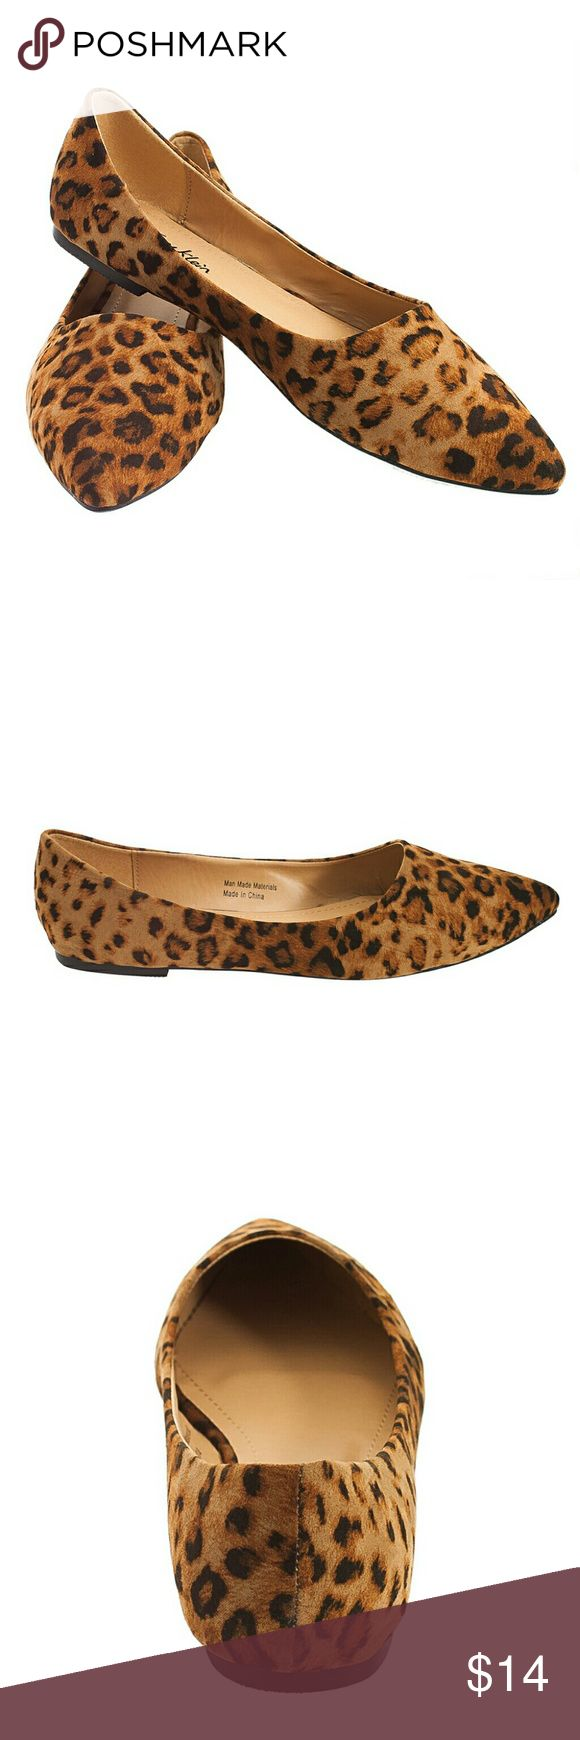 """Tory K Leopard Flats, b-1350, Dark Brown Brand new Tory K dark leopard pointy toe woman ballerina flats. Comfortable padded sole. Ribbed bottom sole for extra traction. A true statement in ladies shoes fashion! Measurements: larger sizes run small. Size 8 measures 9.5"""", sz 8.5 - 9 3/4"""", sz 9 - 10"""", sz 9.5 - 10 1/4"""", sz 10 - 10.5"""", all half sizes are in 1/4"""" increments of each other. Tory K  Shoes Flats & Loafers"""